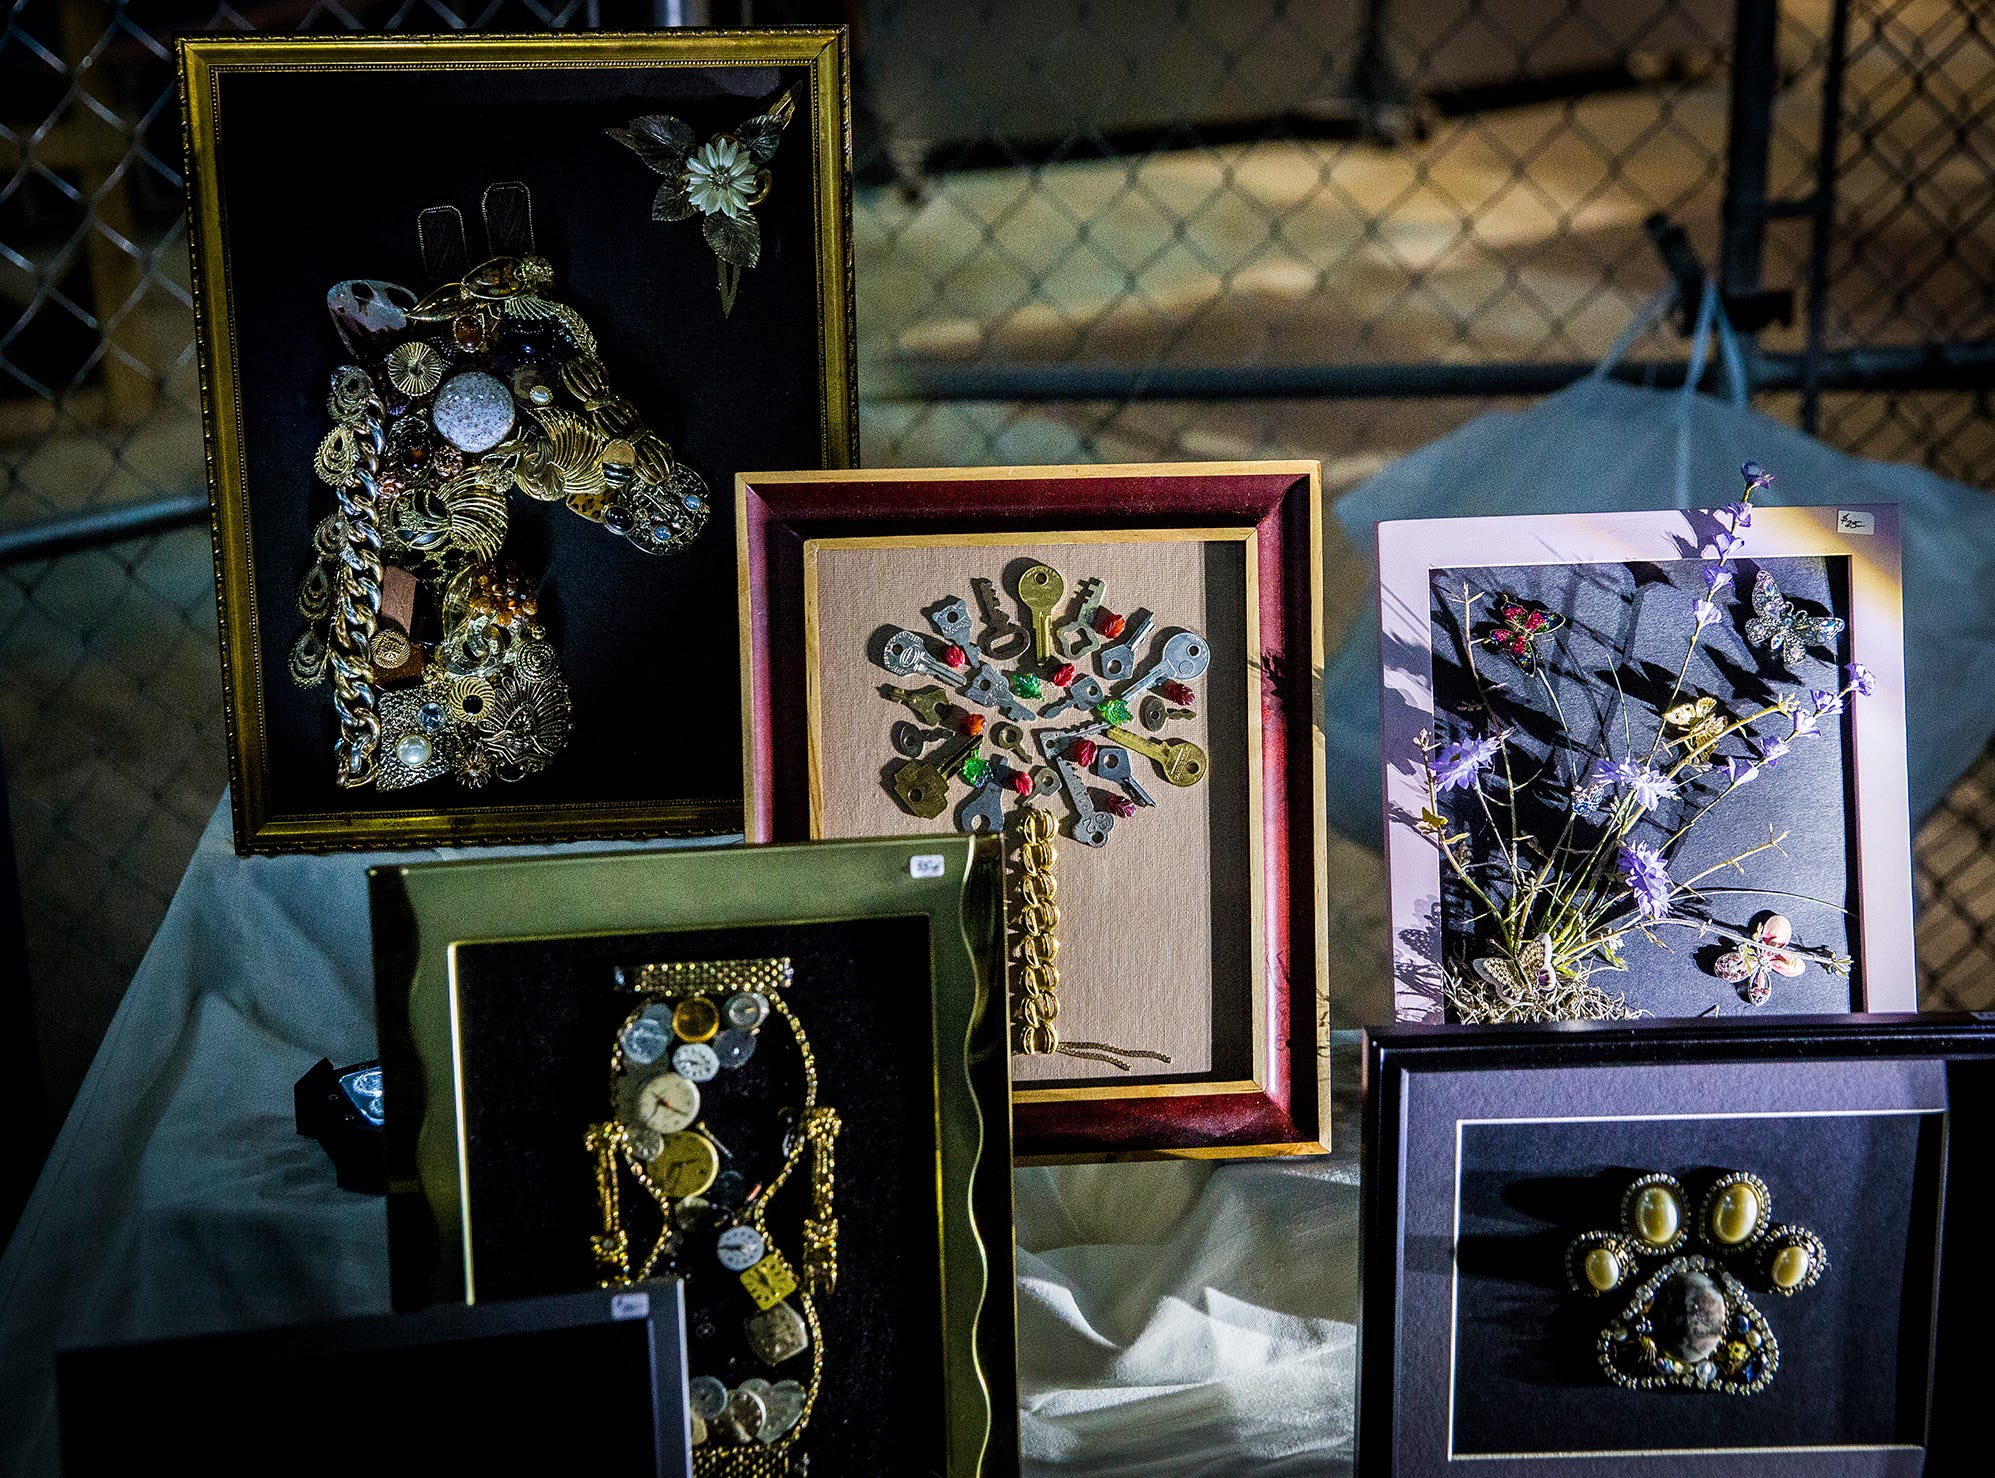 Local visual artists, performers and students showcased their creativity during the Brink of Summer Artswalk, a special, larger version of First Thursday in downtown Muncie.